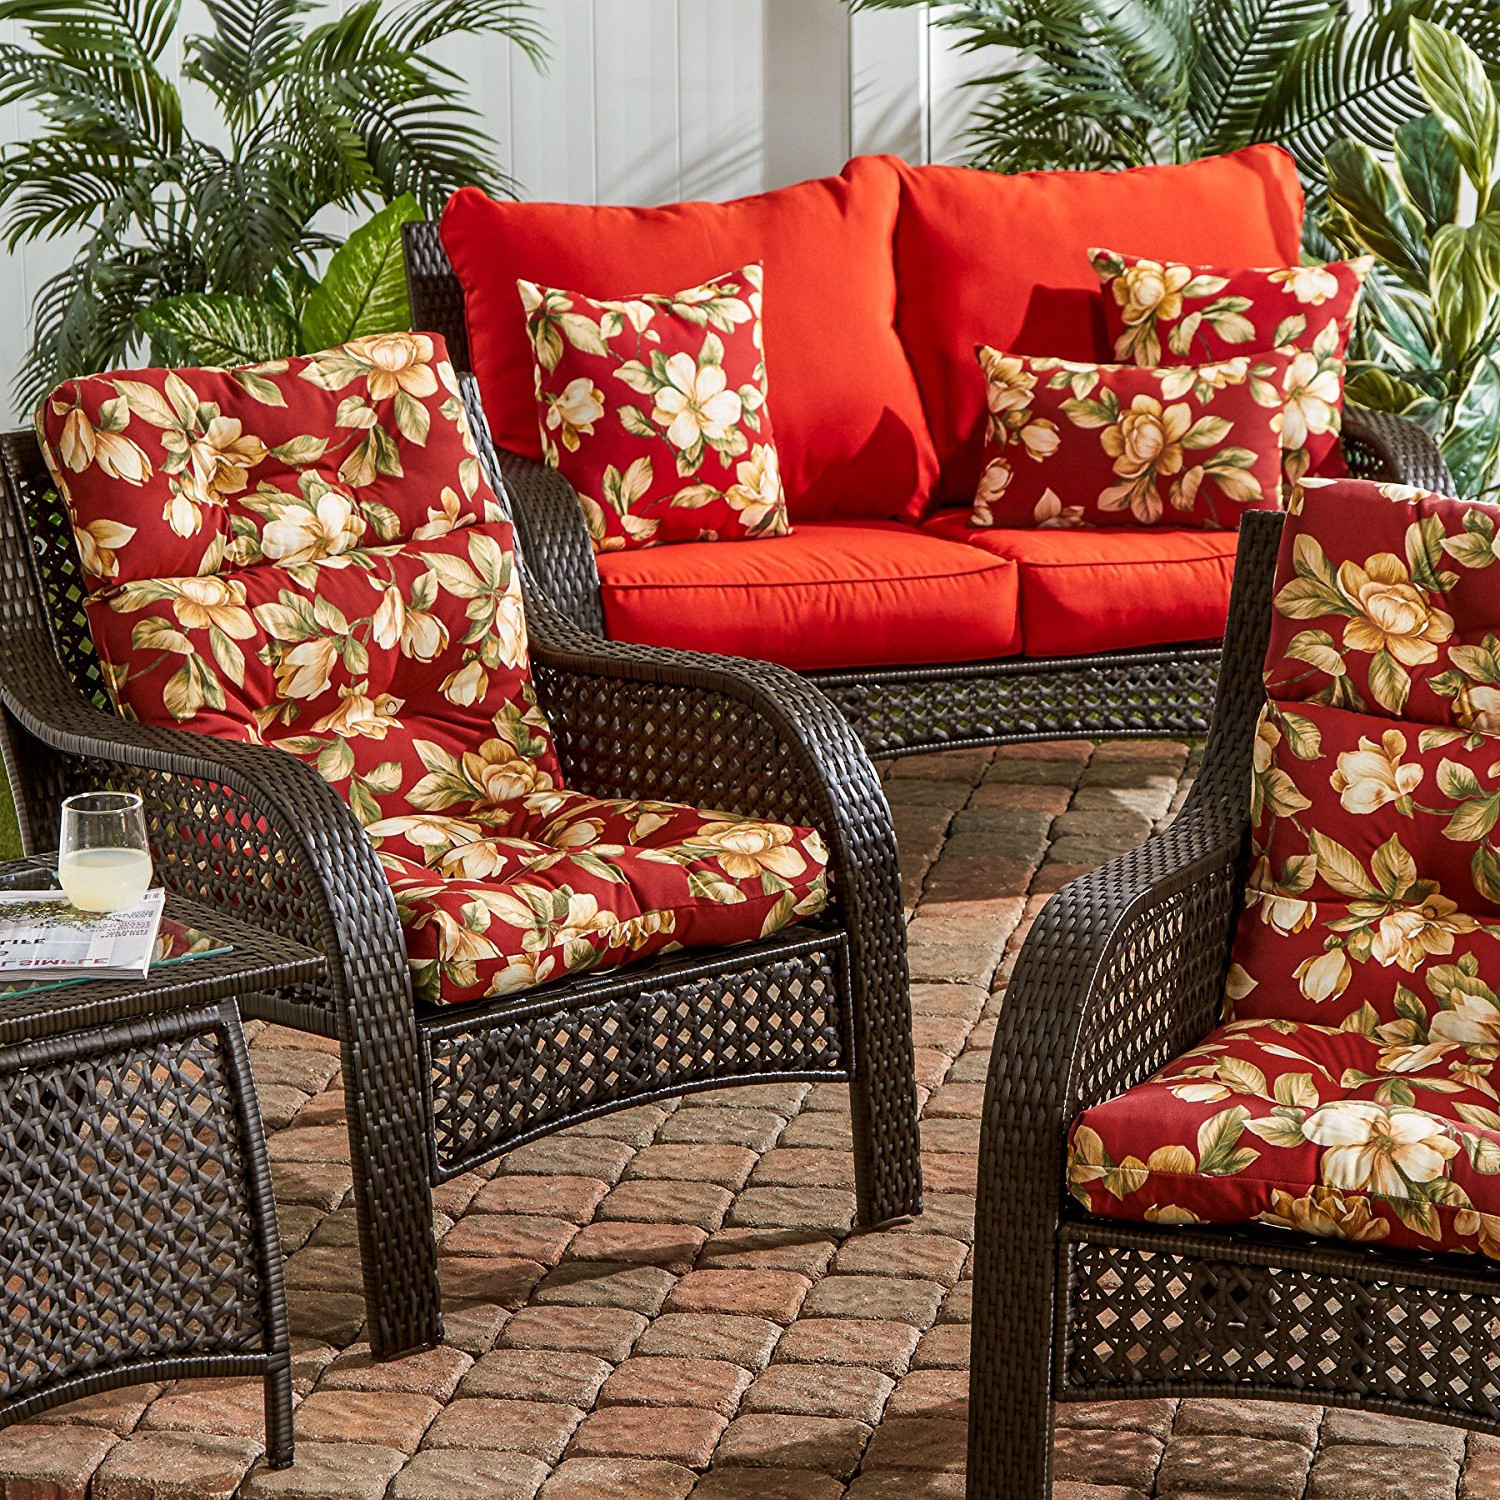 high back chair patio furniture wicker outdoor cushion red replacement for deep